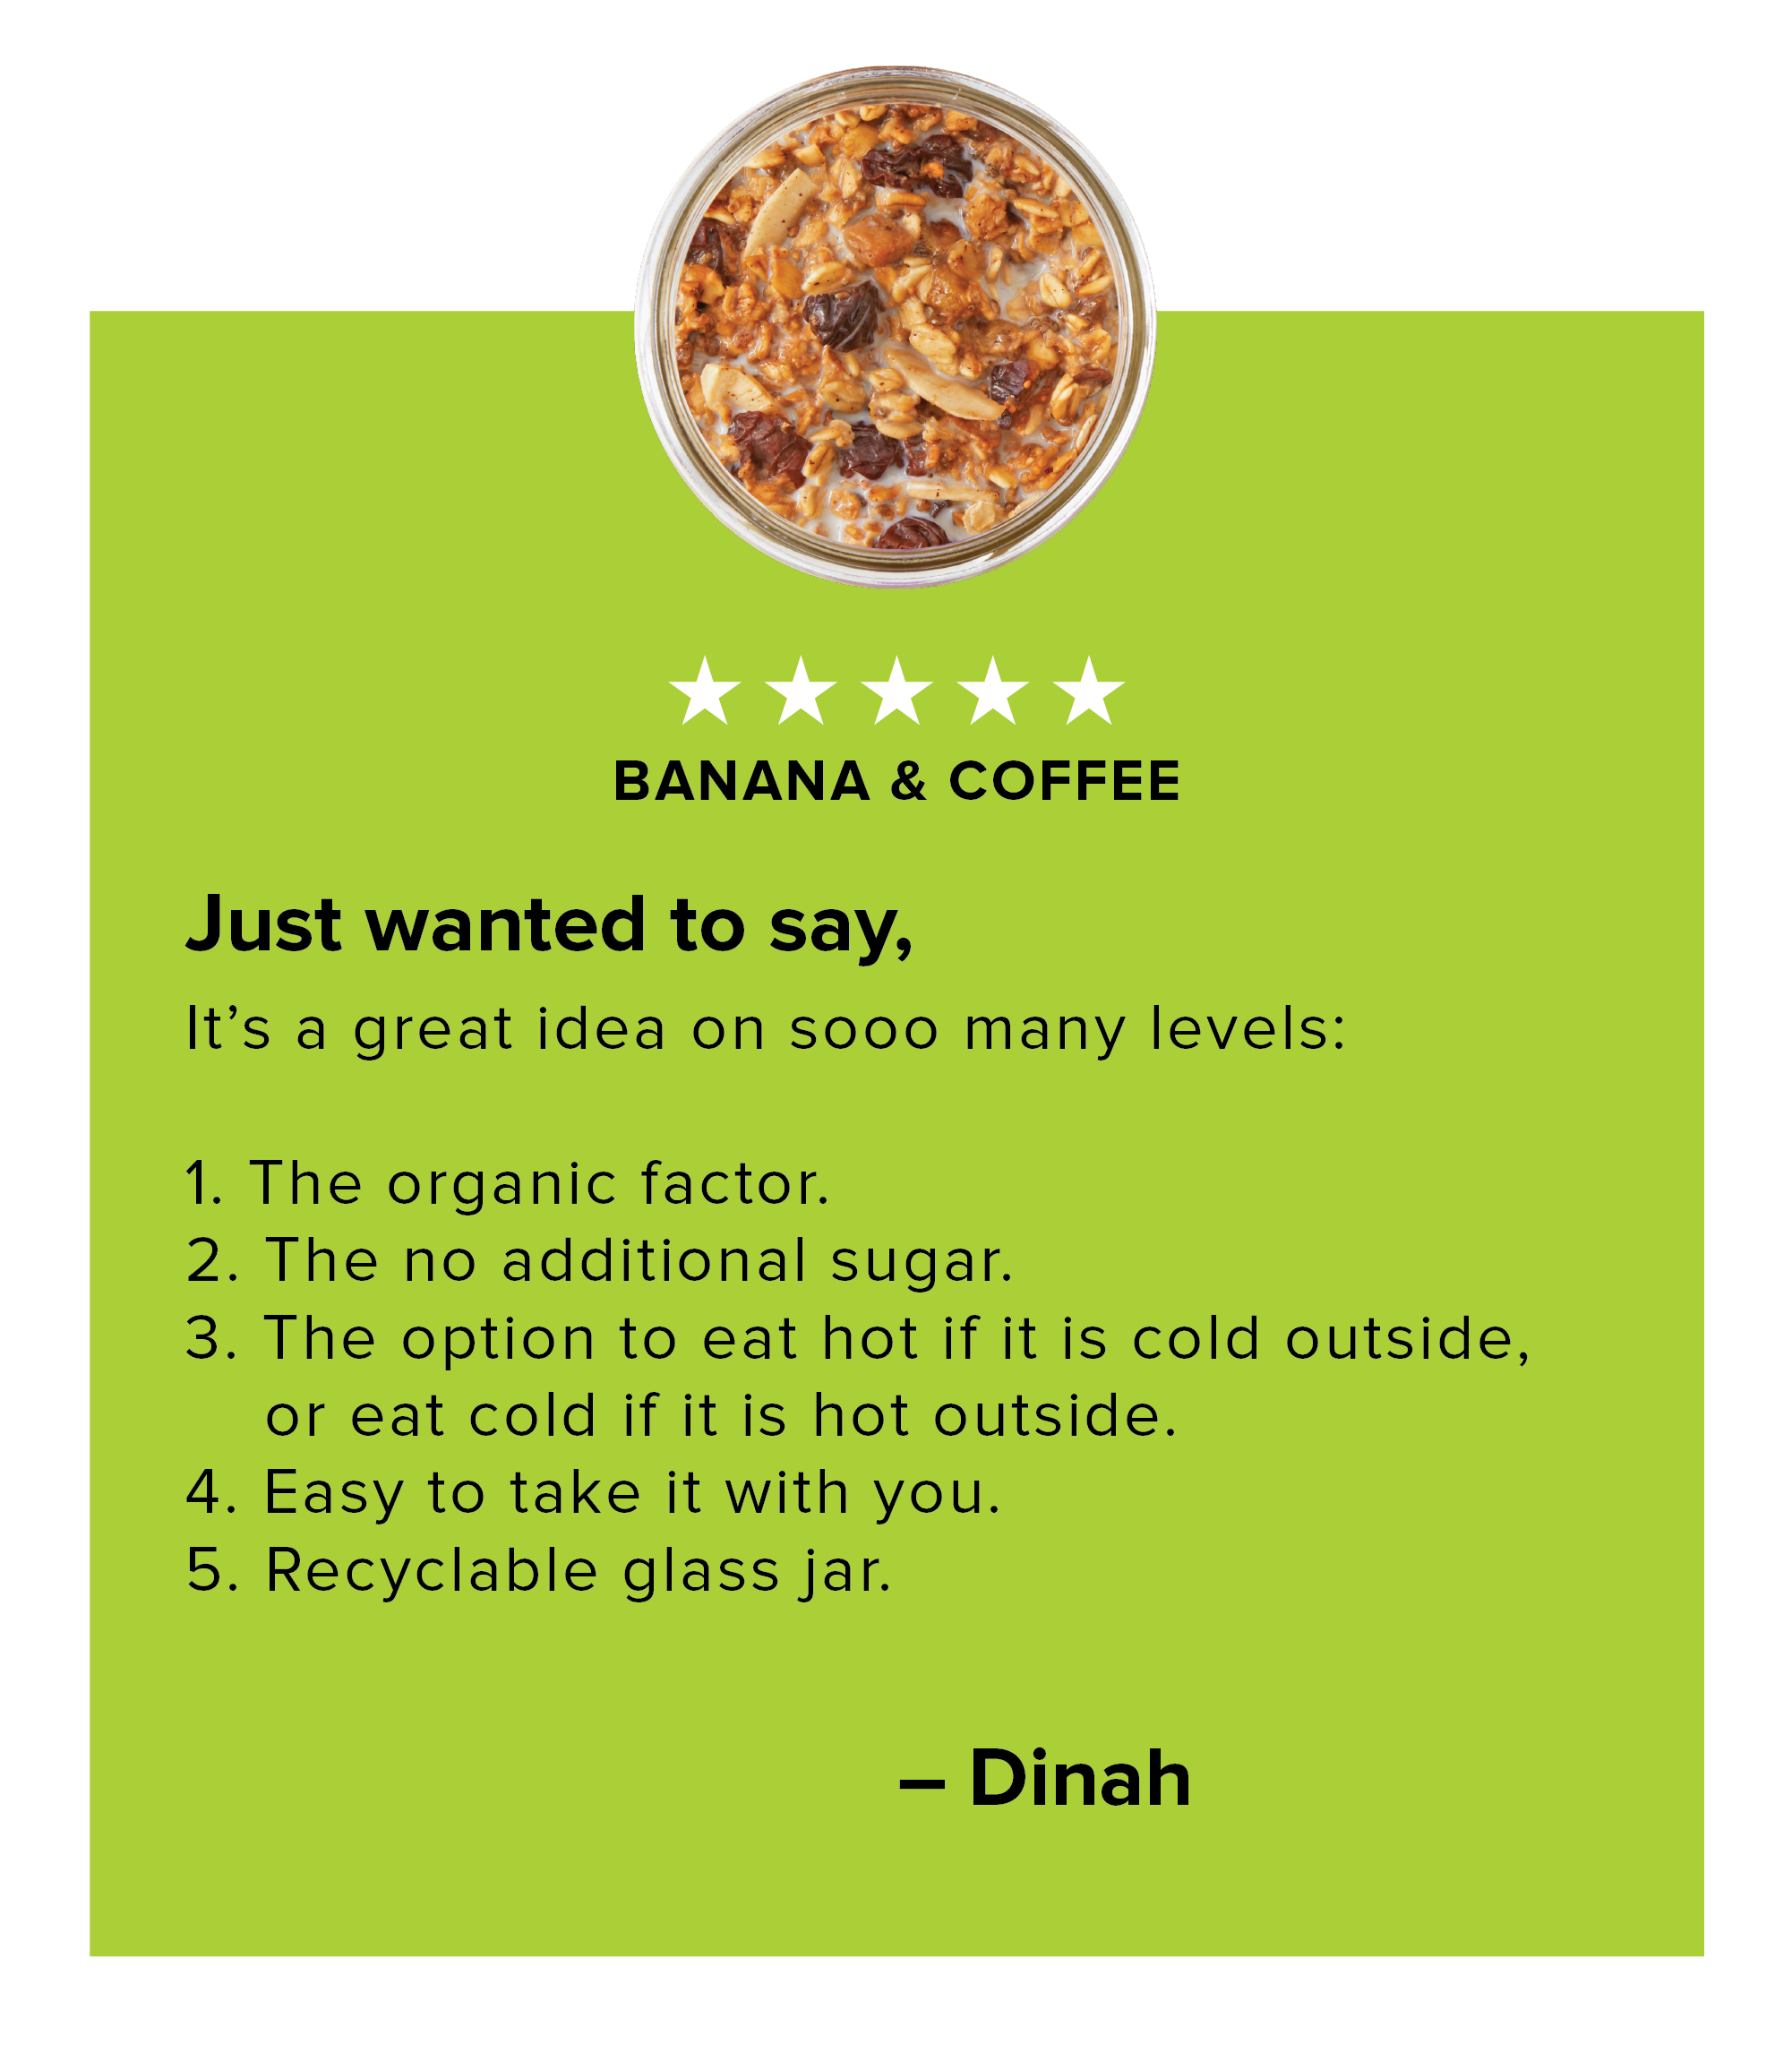 Banana & Coffee Review